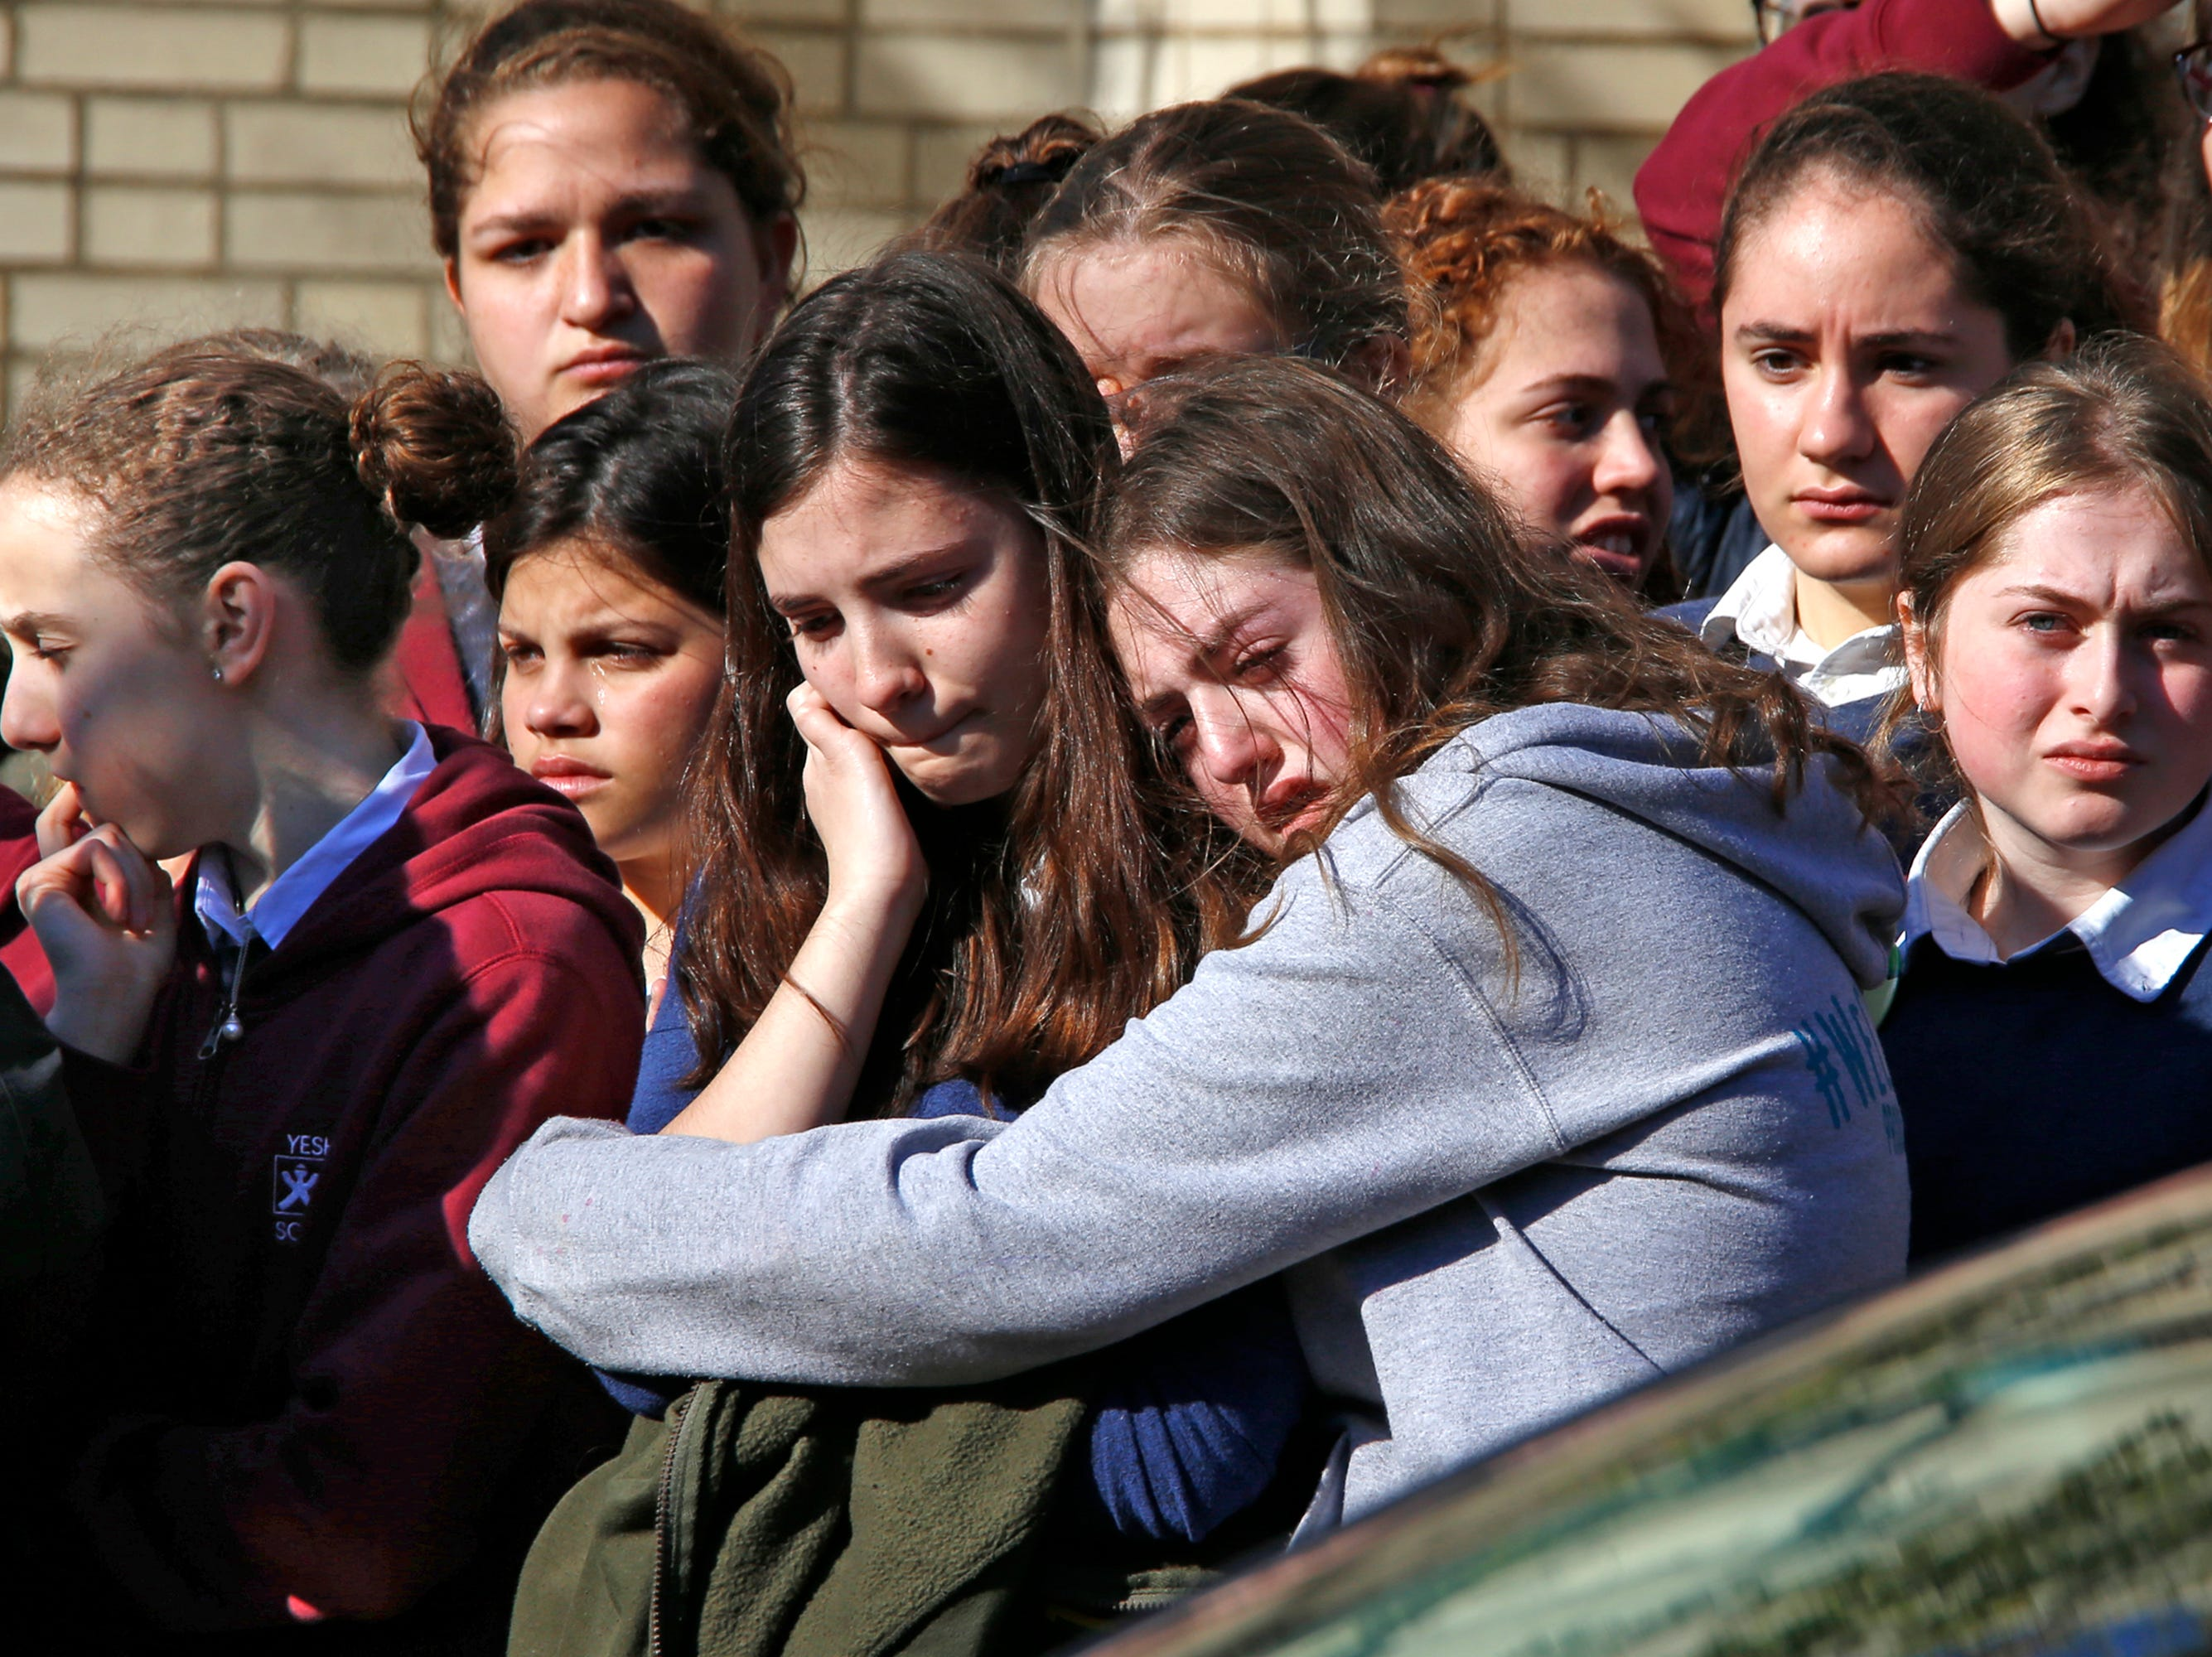 Students from the Yeshiva School in the Squirrel Hill neighborhood of Pittsburgh stand outside Beth Shalom Synagogue after attending the funeral service for Joyce Fienberg, Oct. 31, 2018. Joyce Fienberg, 75, was one of 11 people killed when a gunman opened fire during worship services at the Tree of Life Synagogue on Oct. 27.